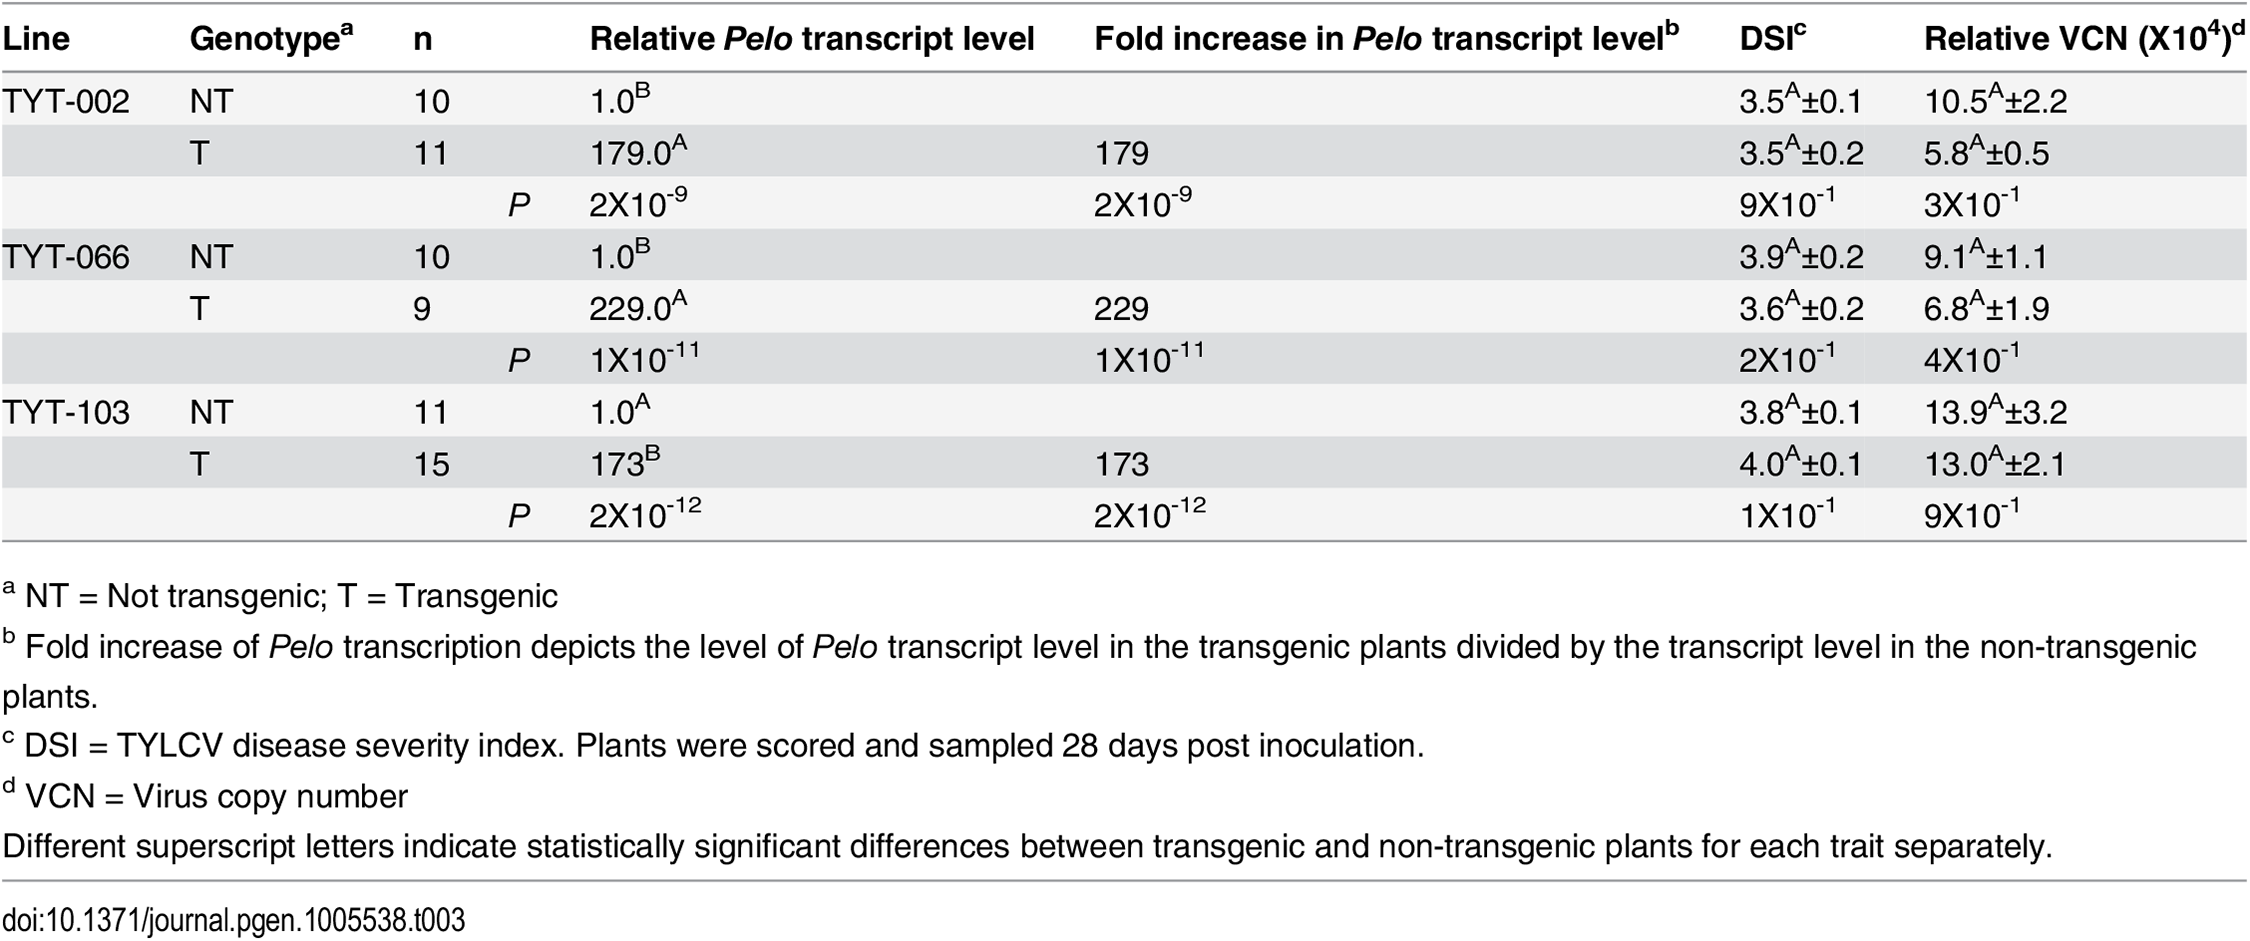 Effect of over-expressing the <i>Pelo</i> allele derived from TY172 plants in transgenic R13 plants.